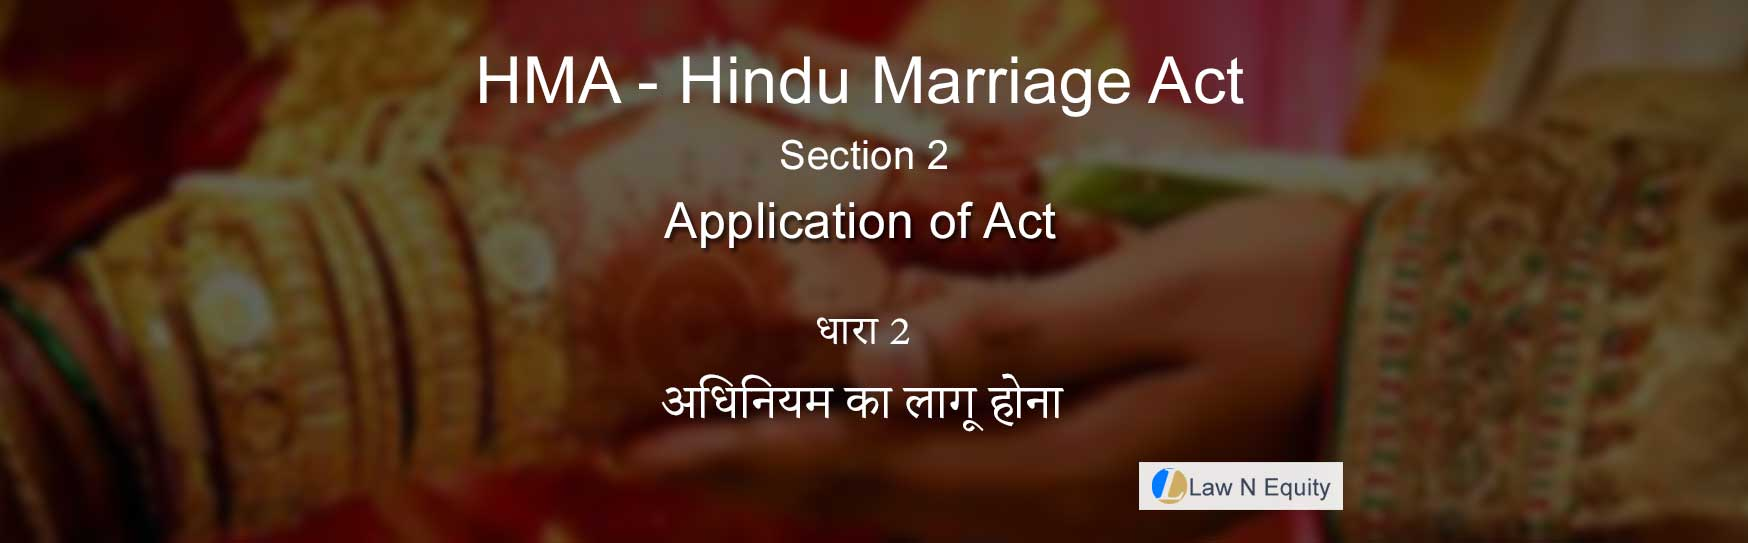 Hindu Marriage Act(HMA) Section 2